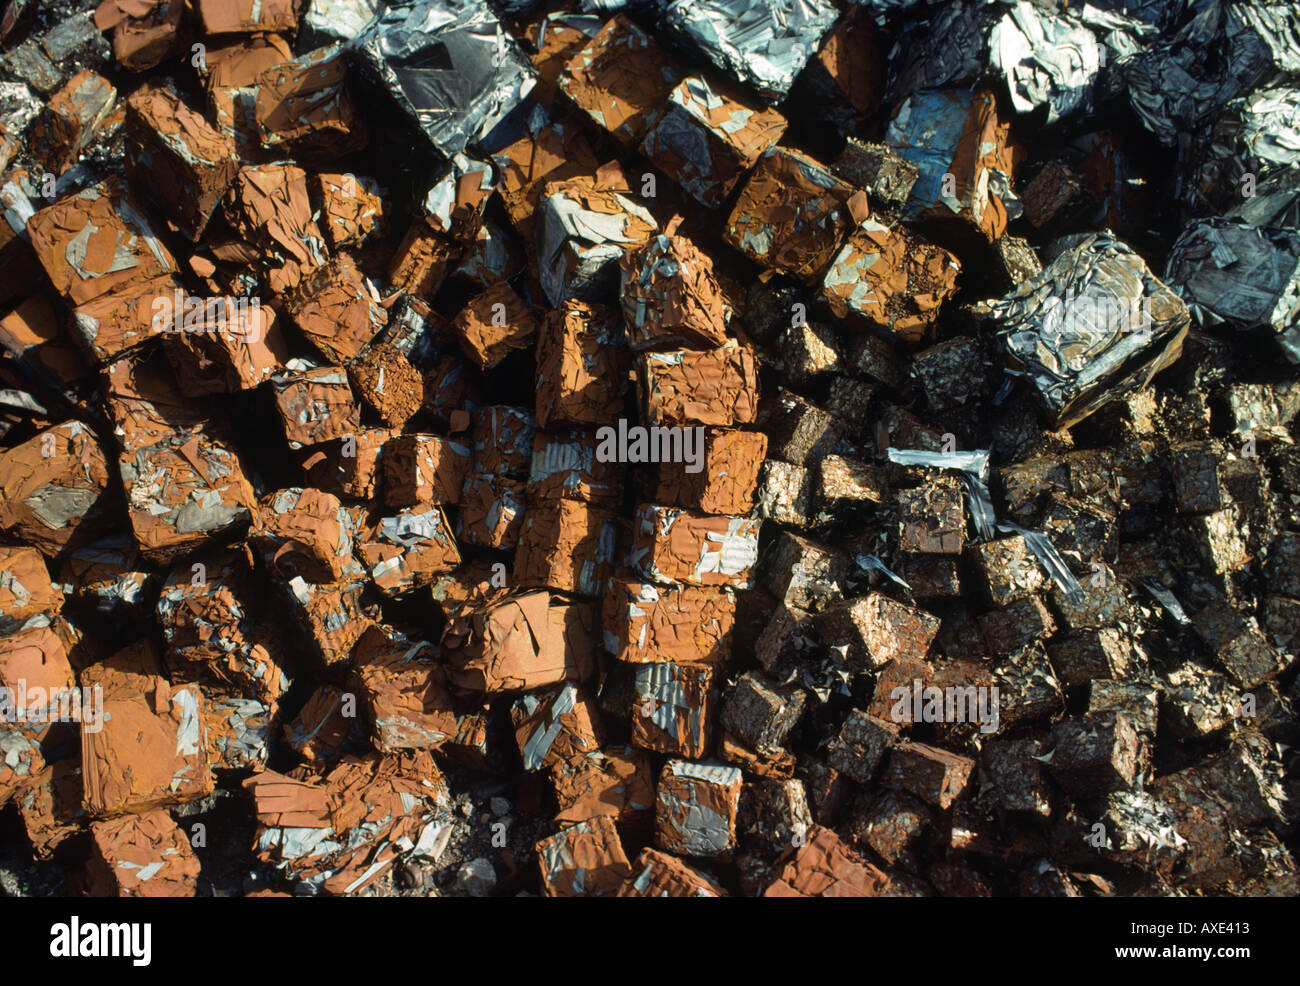 Pile of steel scrap metal industrial waste crushed recycled car bodies waiting to be melted down recycled at iron foundry - Stock Image